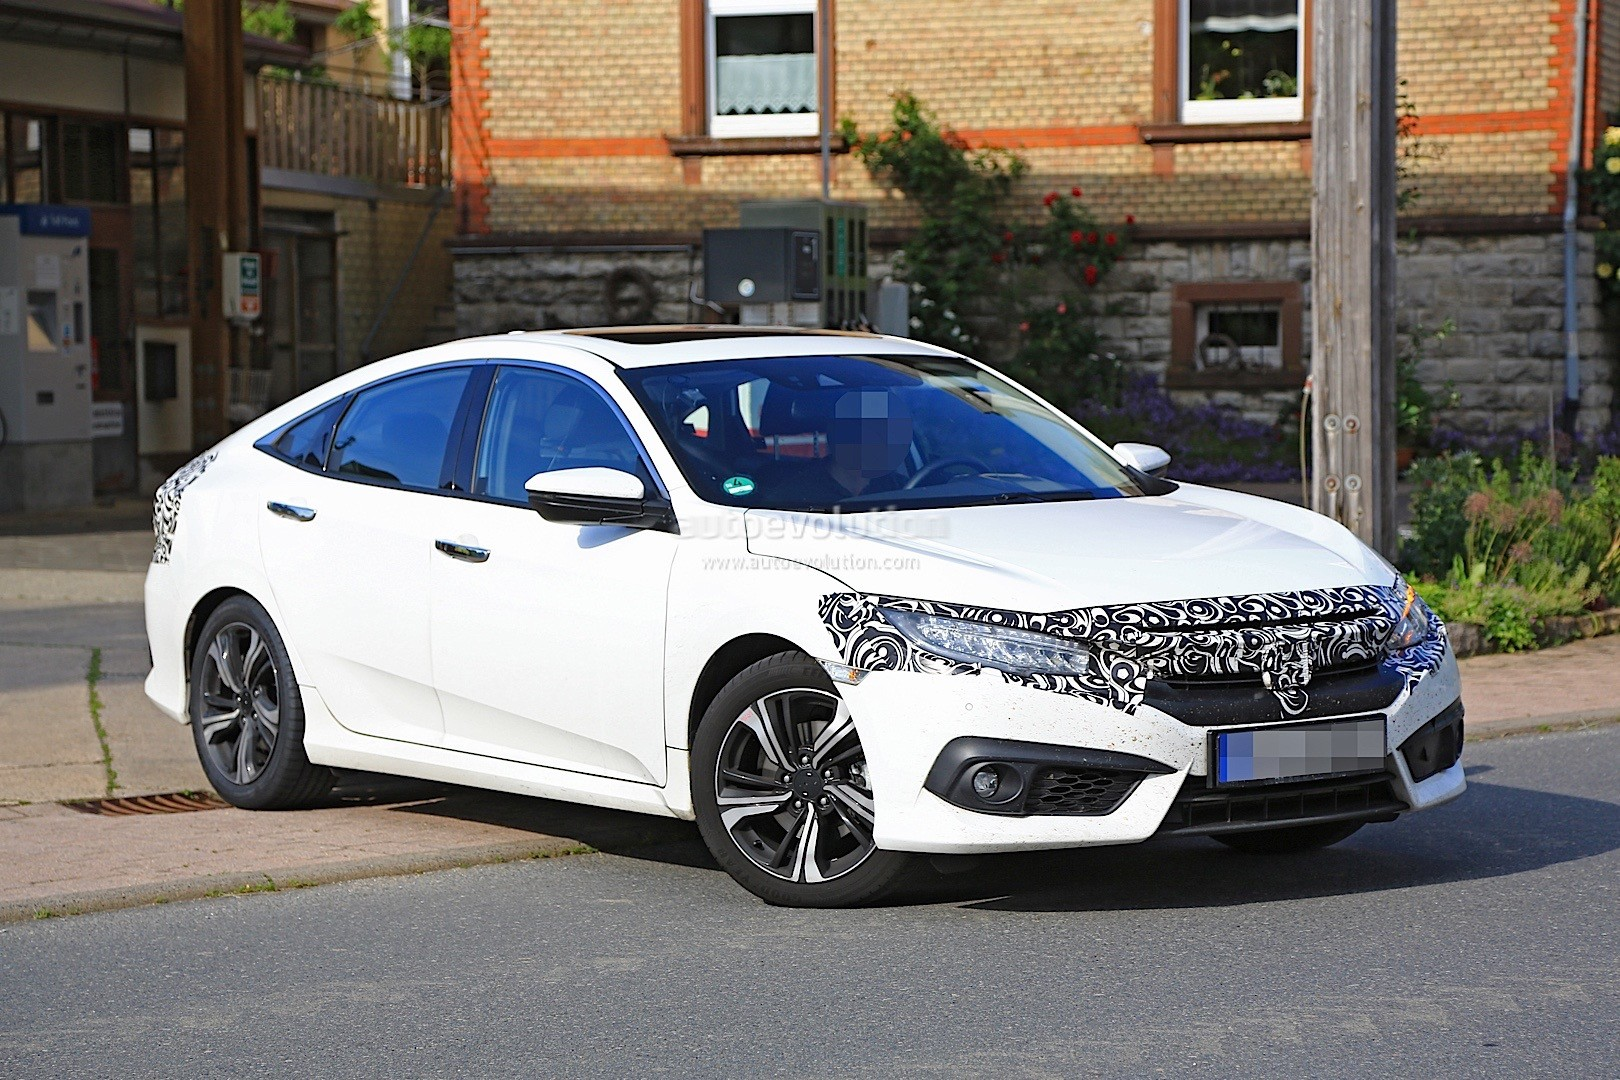 2018 Honda Accord Sedan 2.4TL European Version photo - 1